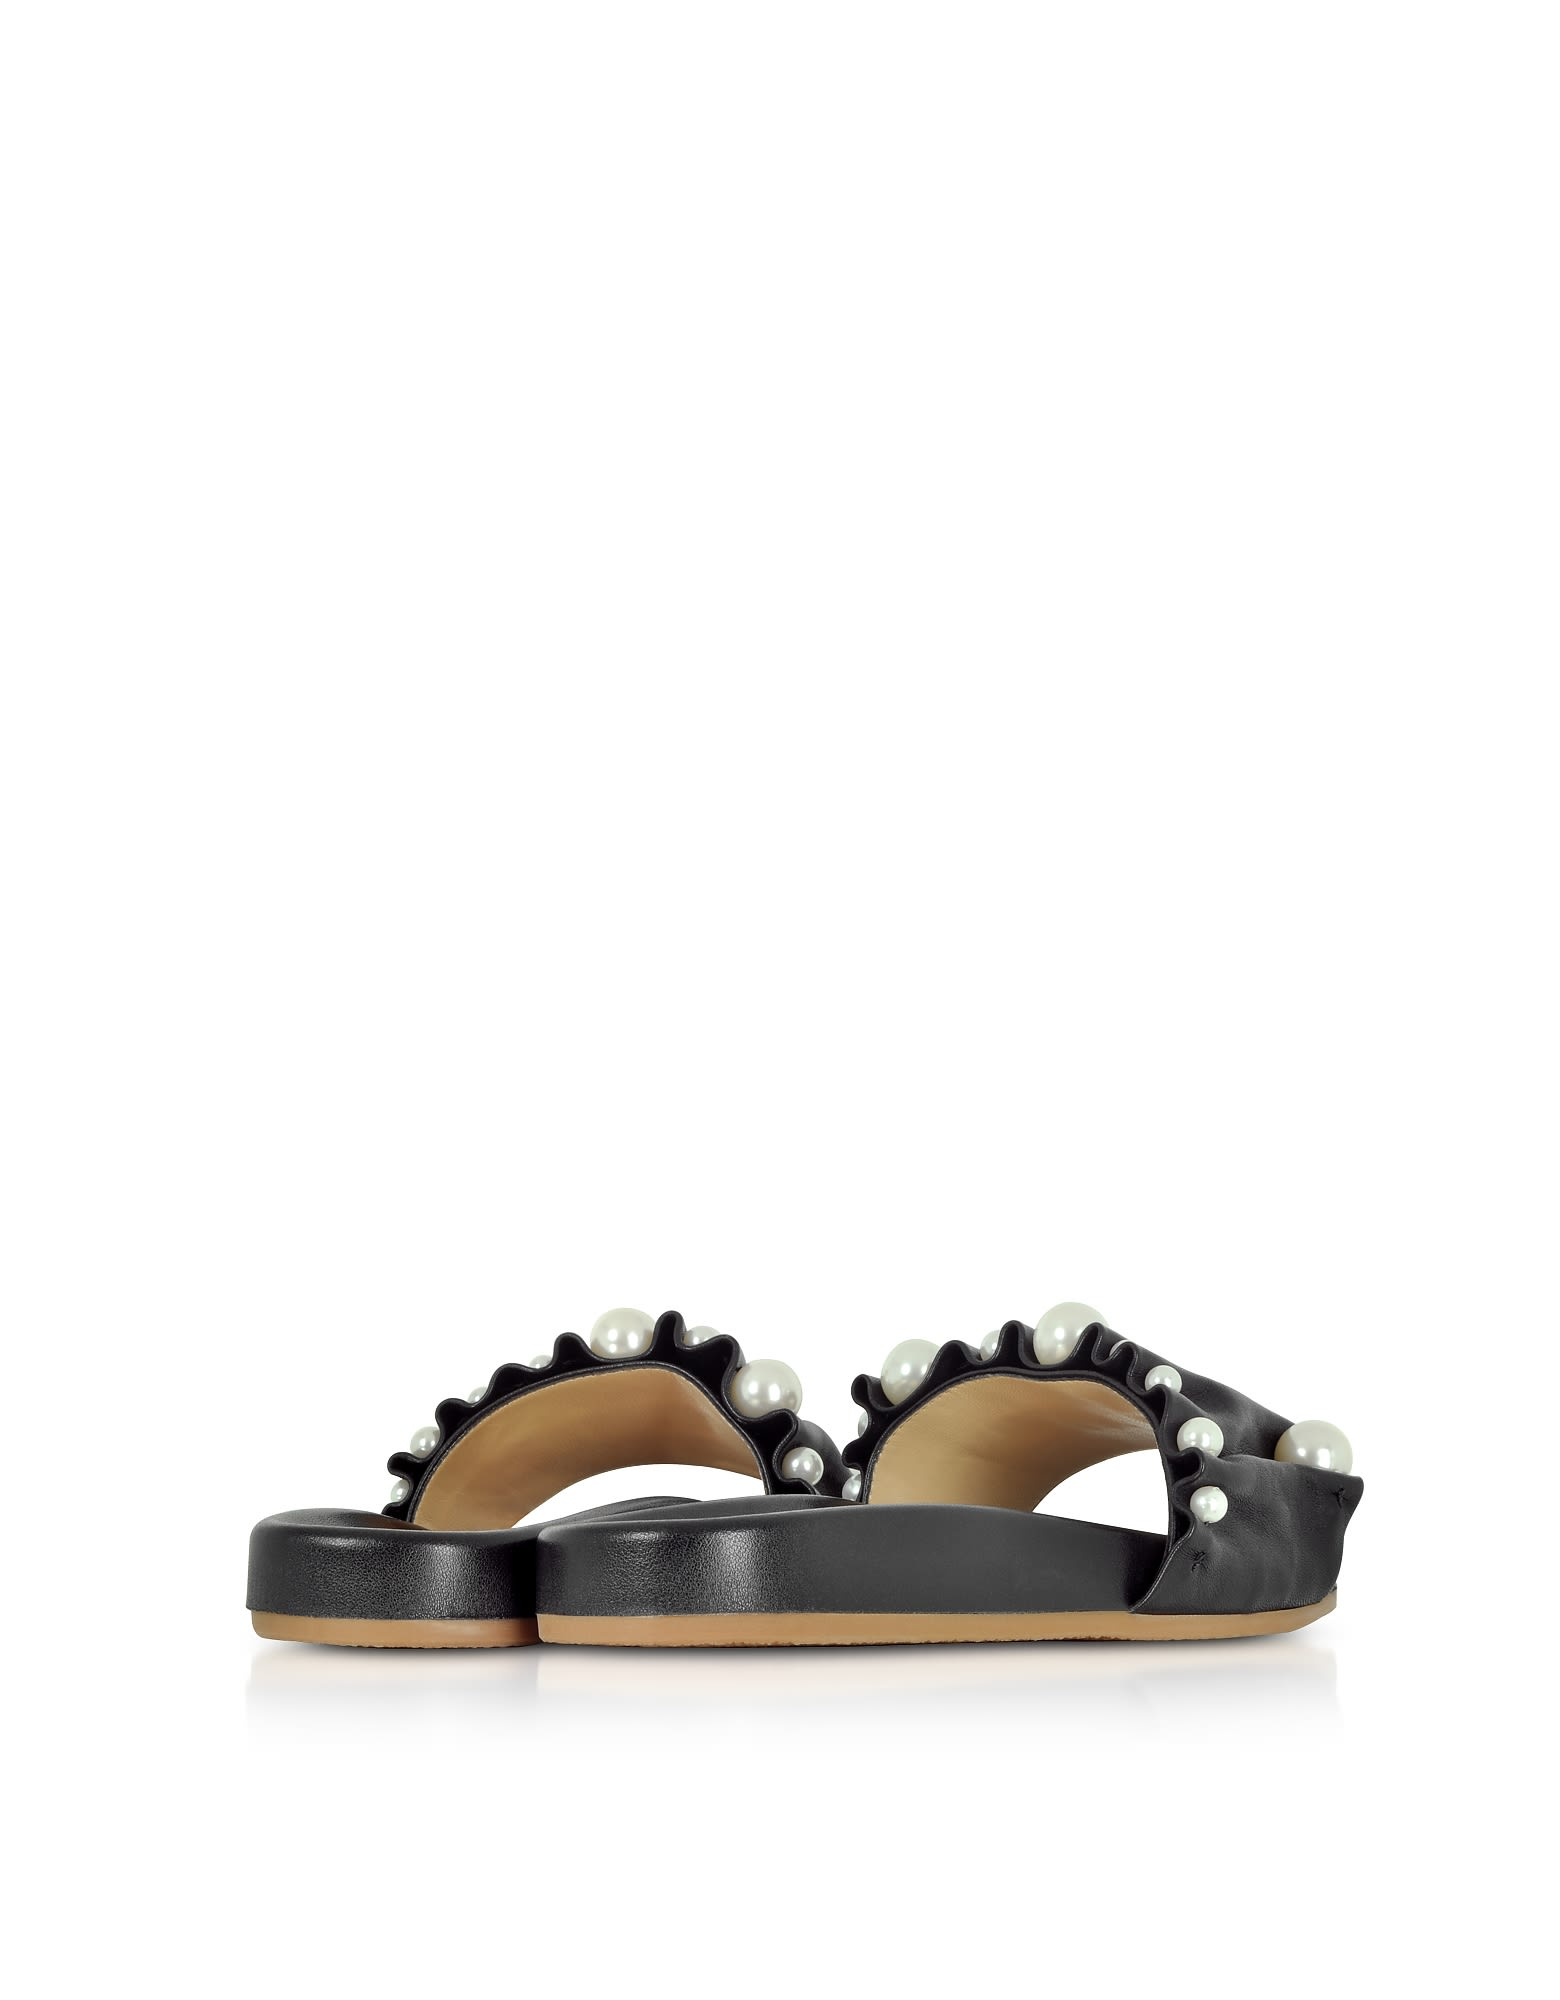 Charlotte Olympia Designer Shoes, Pleated Nappa Leather Slide Sandals w/Pearls